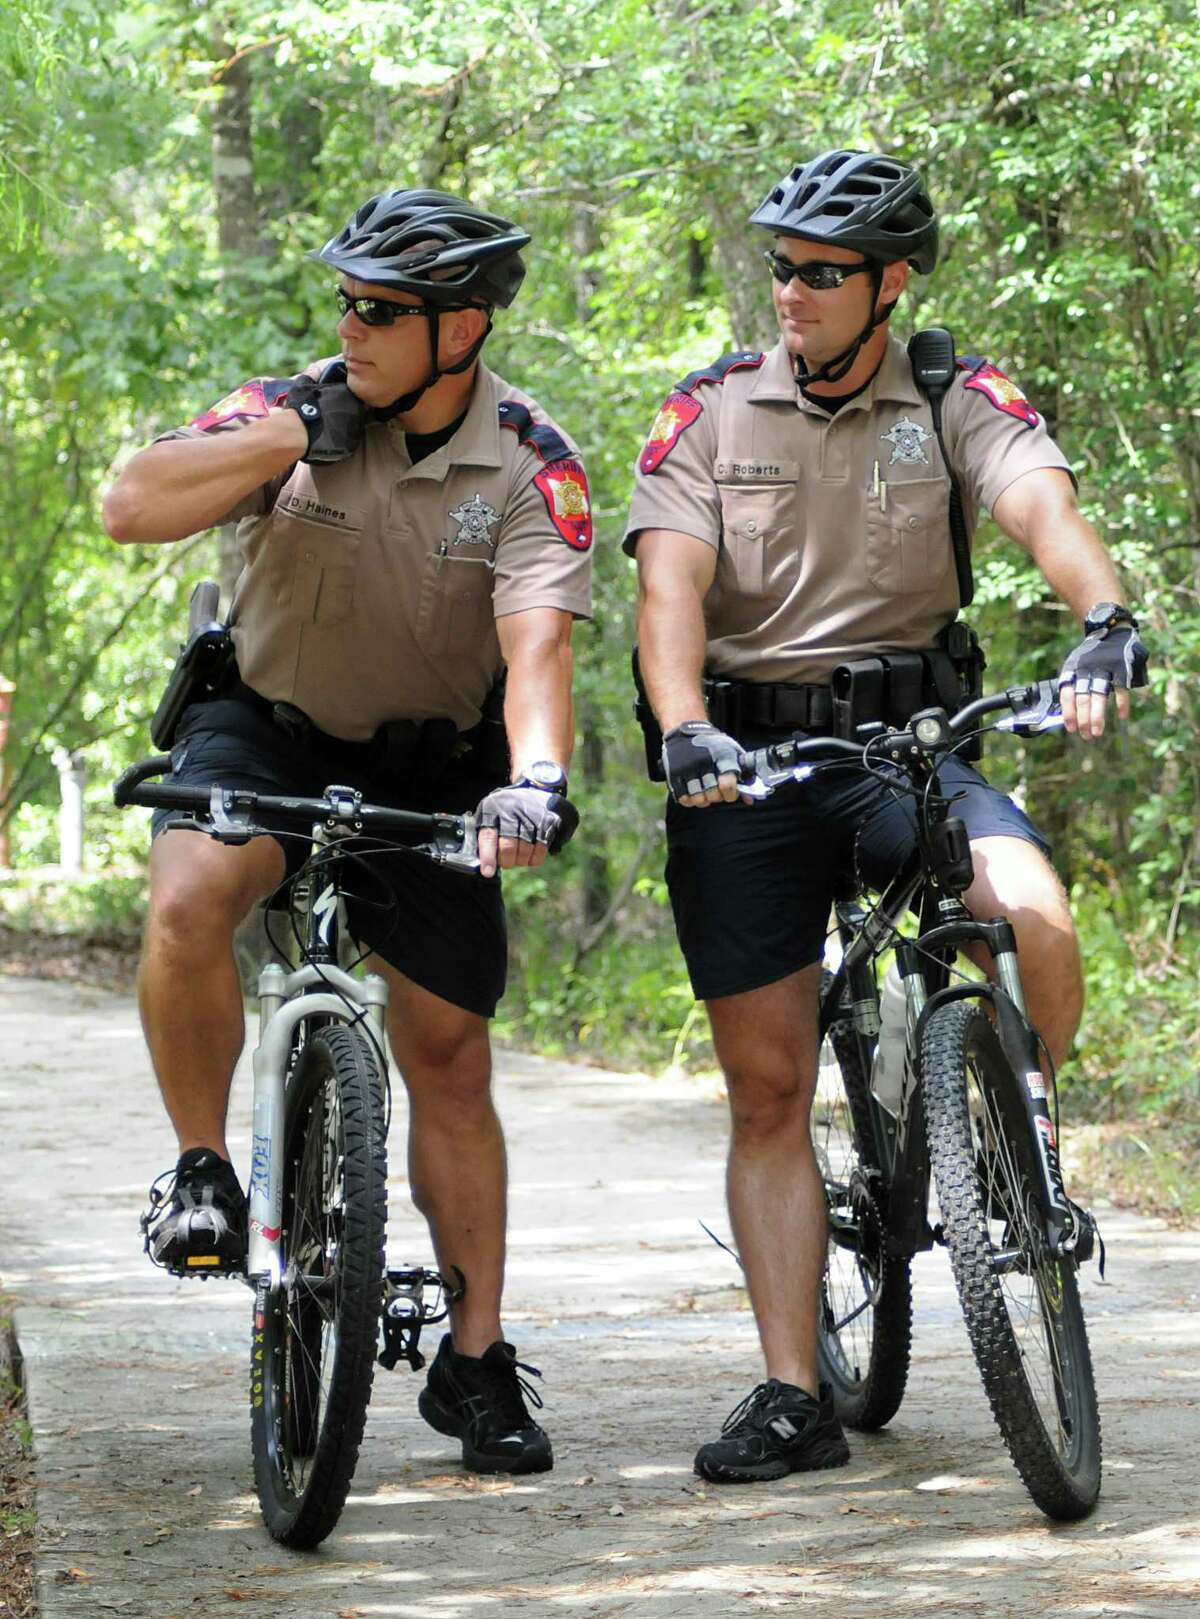 Montgomery County Sheriff's Department Bike Patrol deputies David Haines and Chris Roberts call in a suspicious vehicle license as they ride a patrol on one of the bike paths in The Woodlands. The bike patrols have started more patrols into residential neighborhoods following recent assaults on the bike paths. Photo by David Hopper.